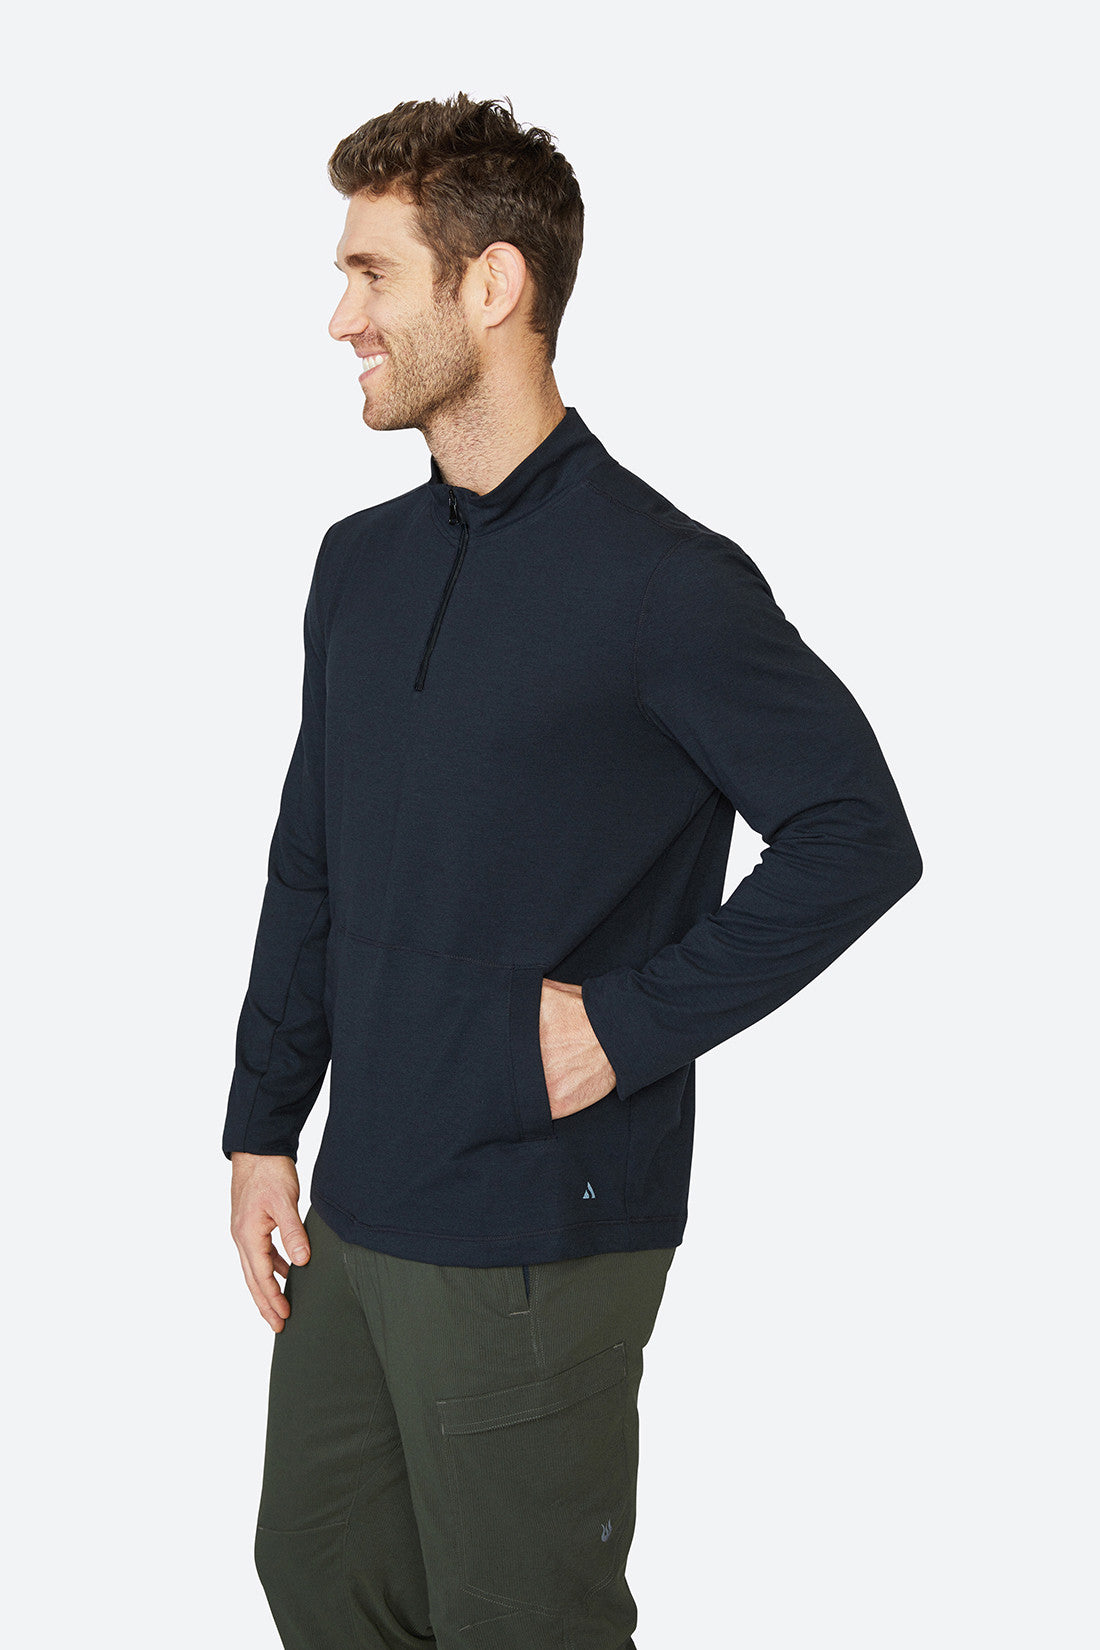 Men's layering piece, Long sleeves, Jack 1/4 zip - Black